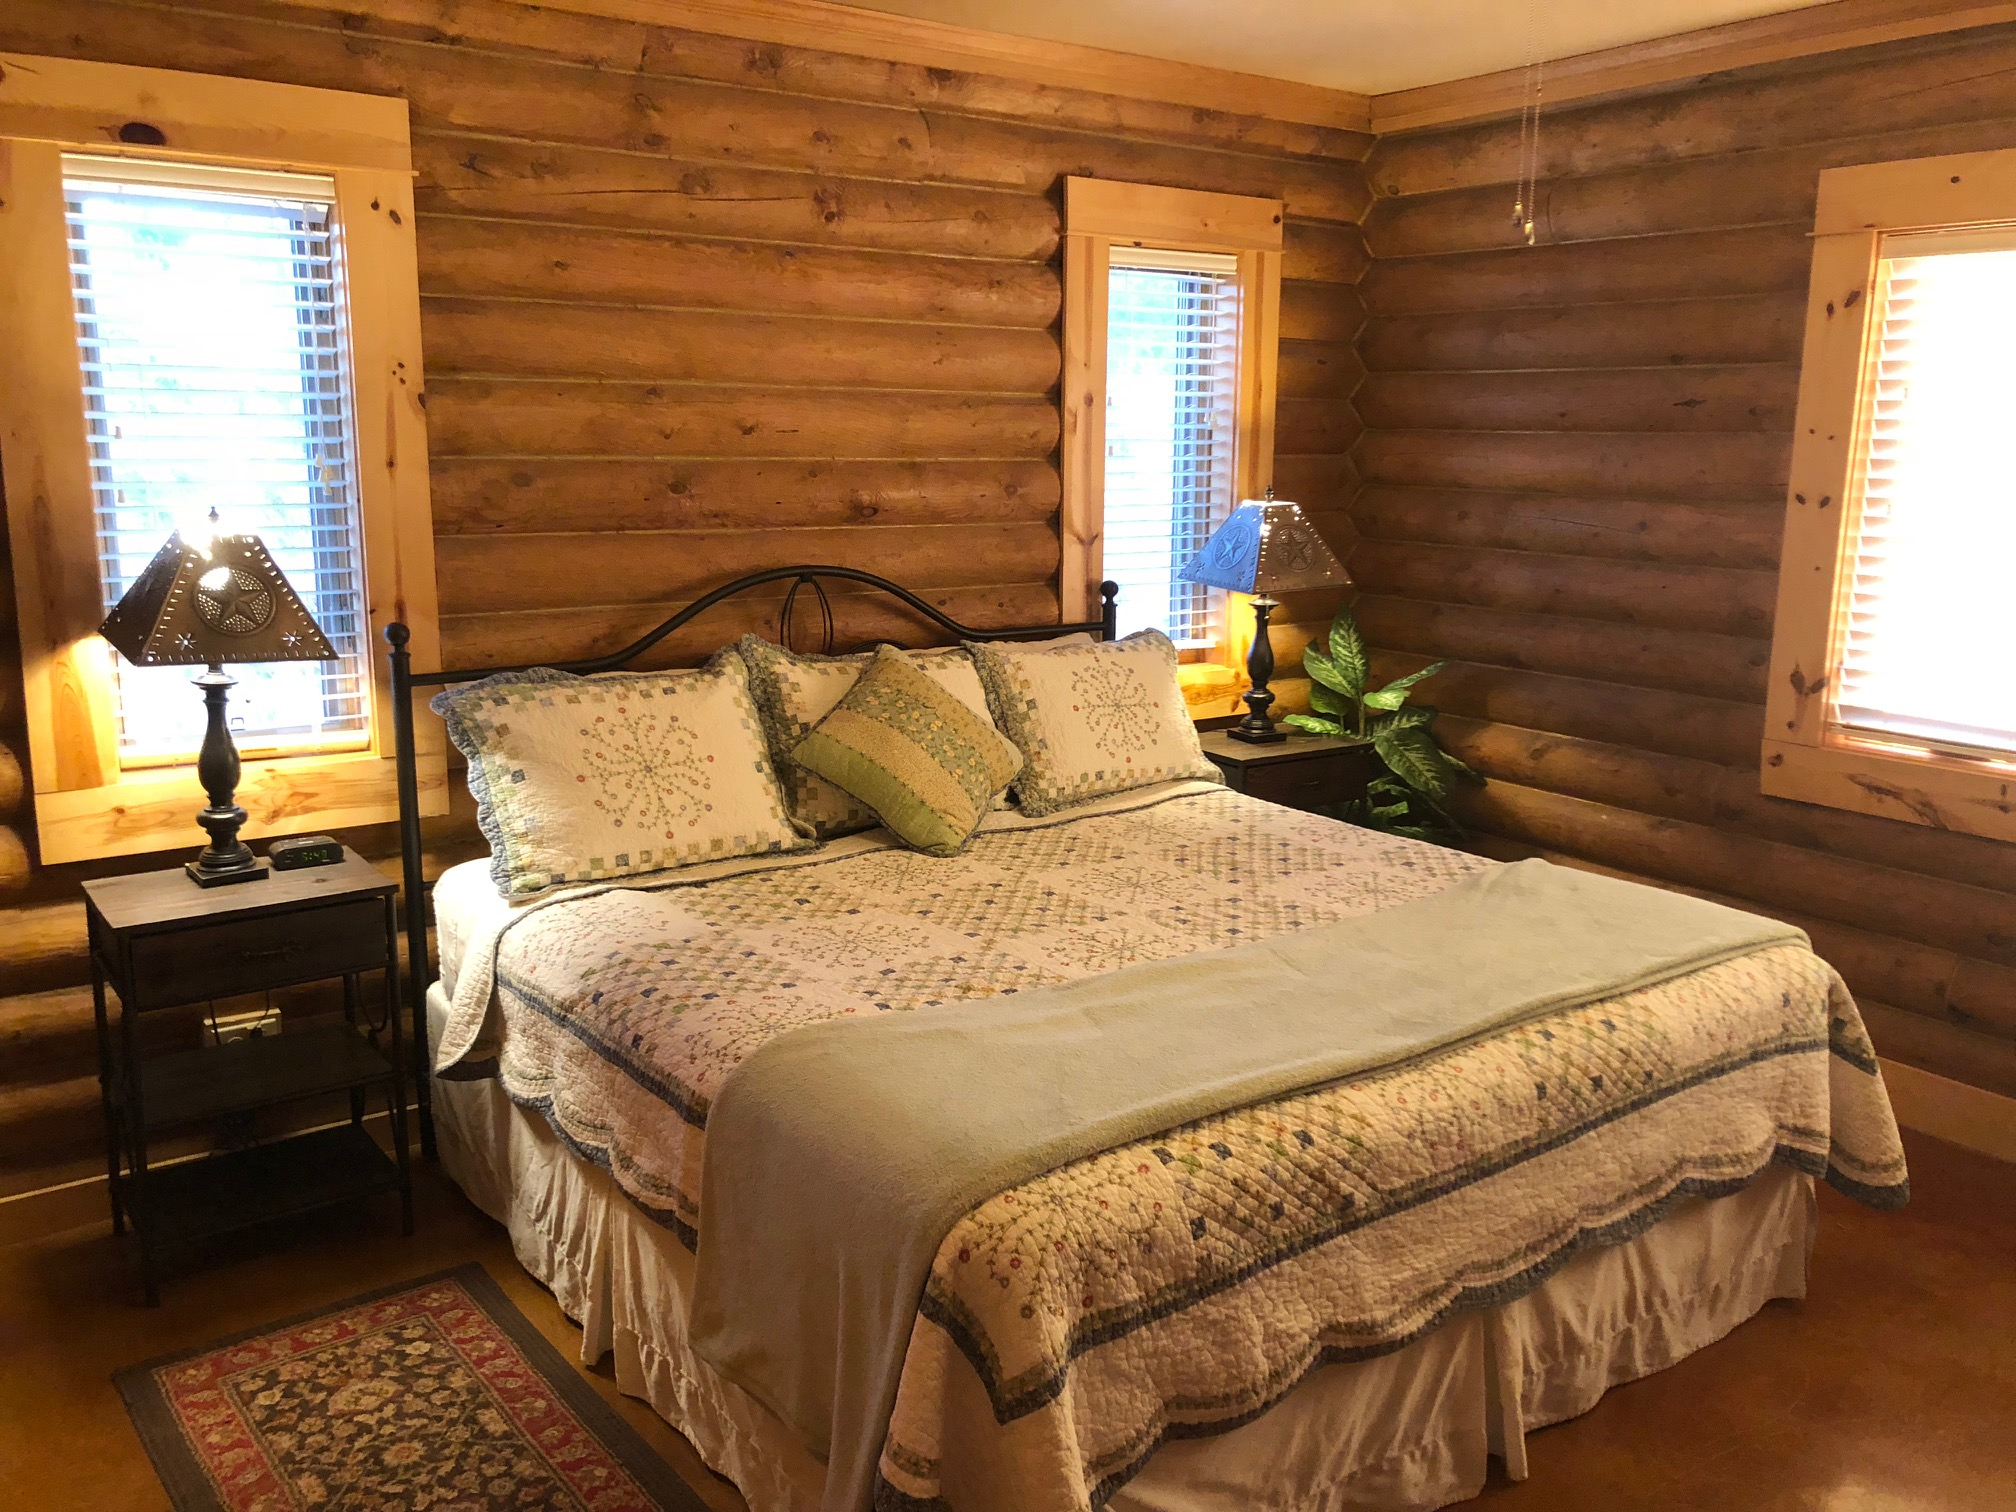 The Log Home master bedroom